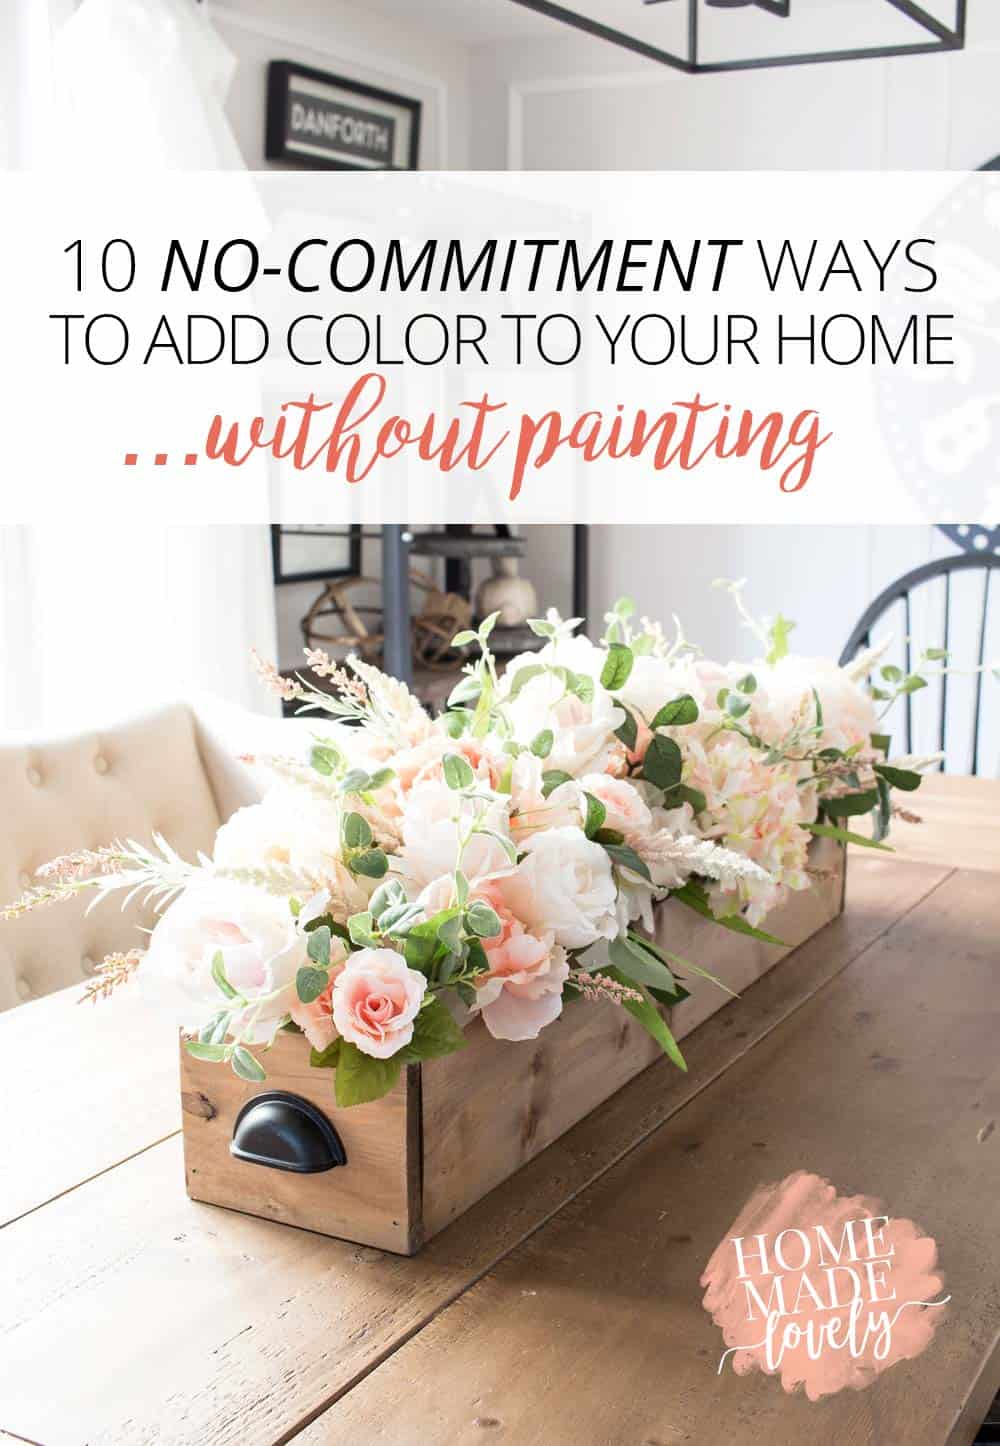 If you tire of a color quickly like I do, here are ten no-commitment ways to add color to your decor, without painting!